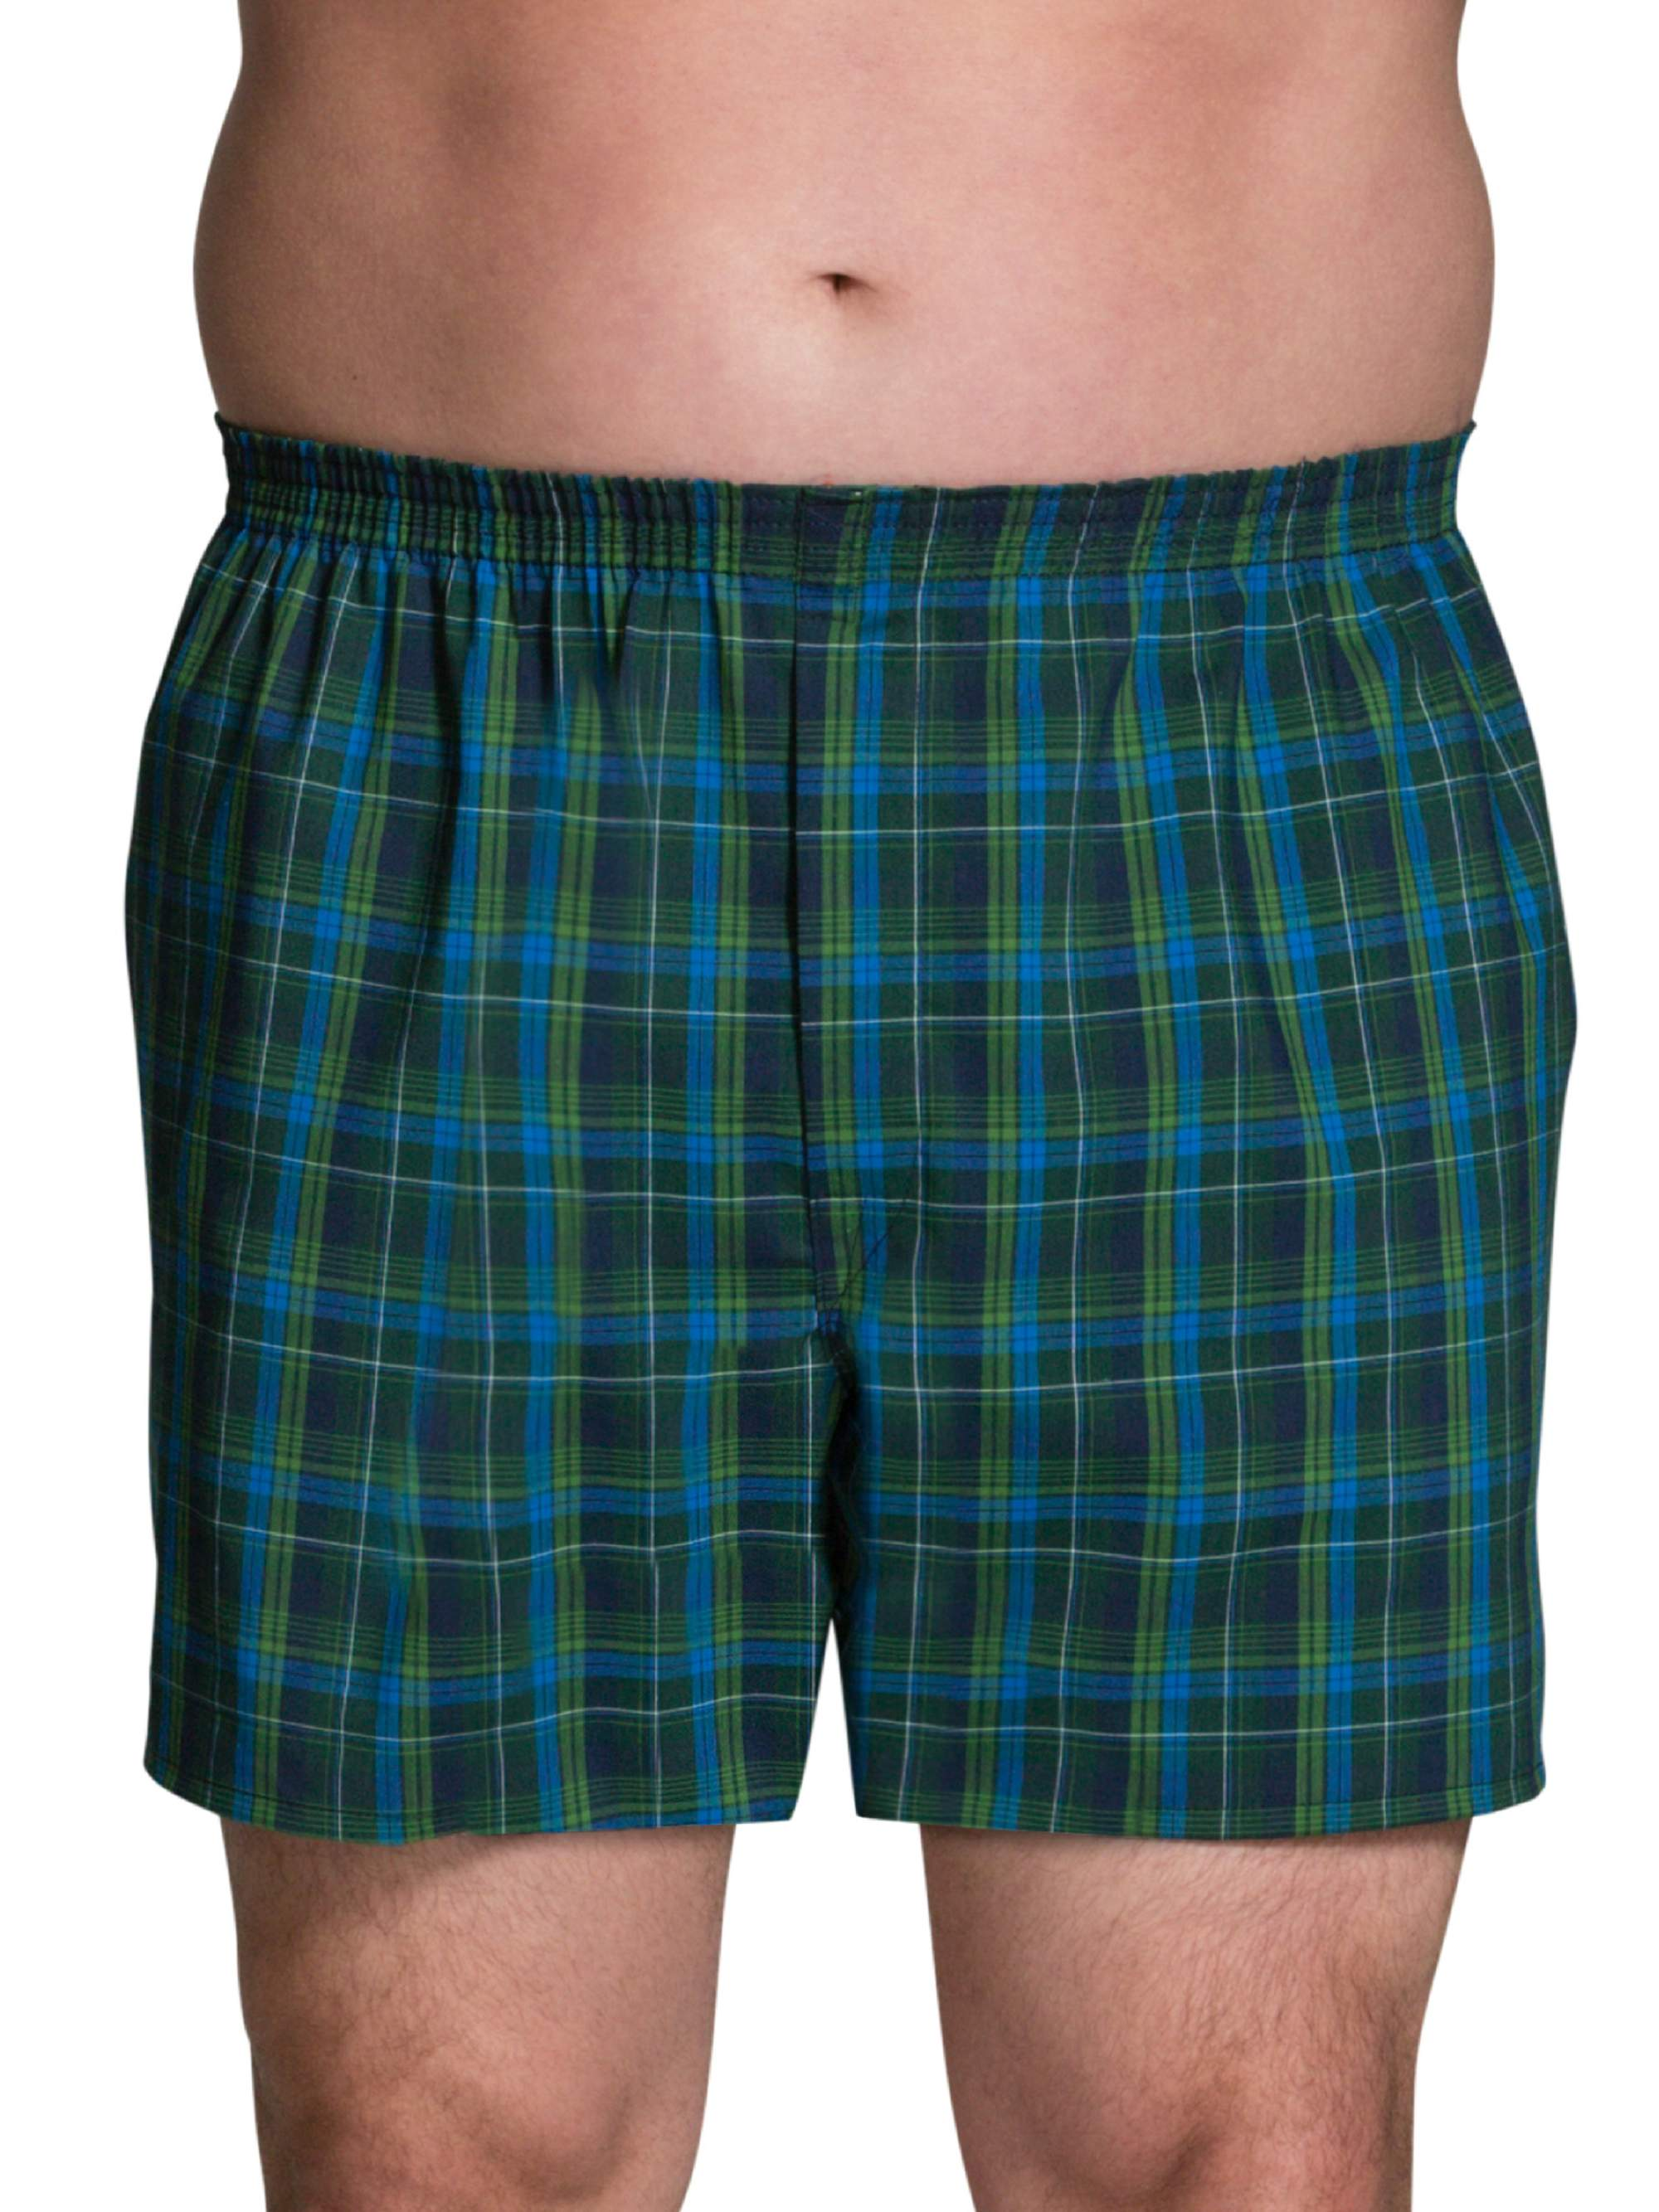 Men's Dual Defense Woven Tartan Plaid Boxers, Extended Sizes, 4 Pack